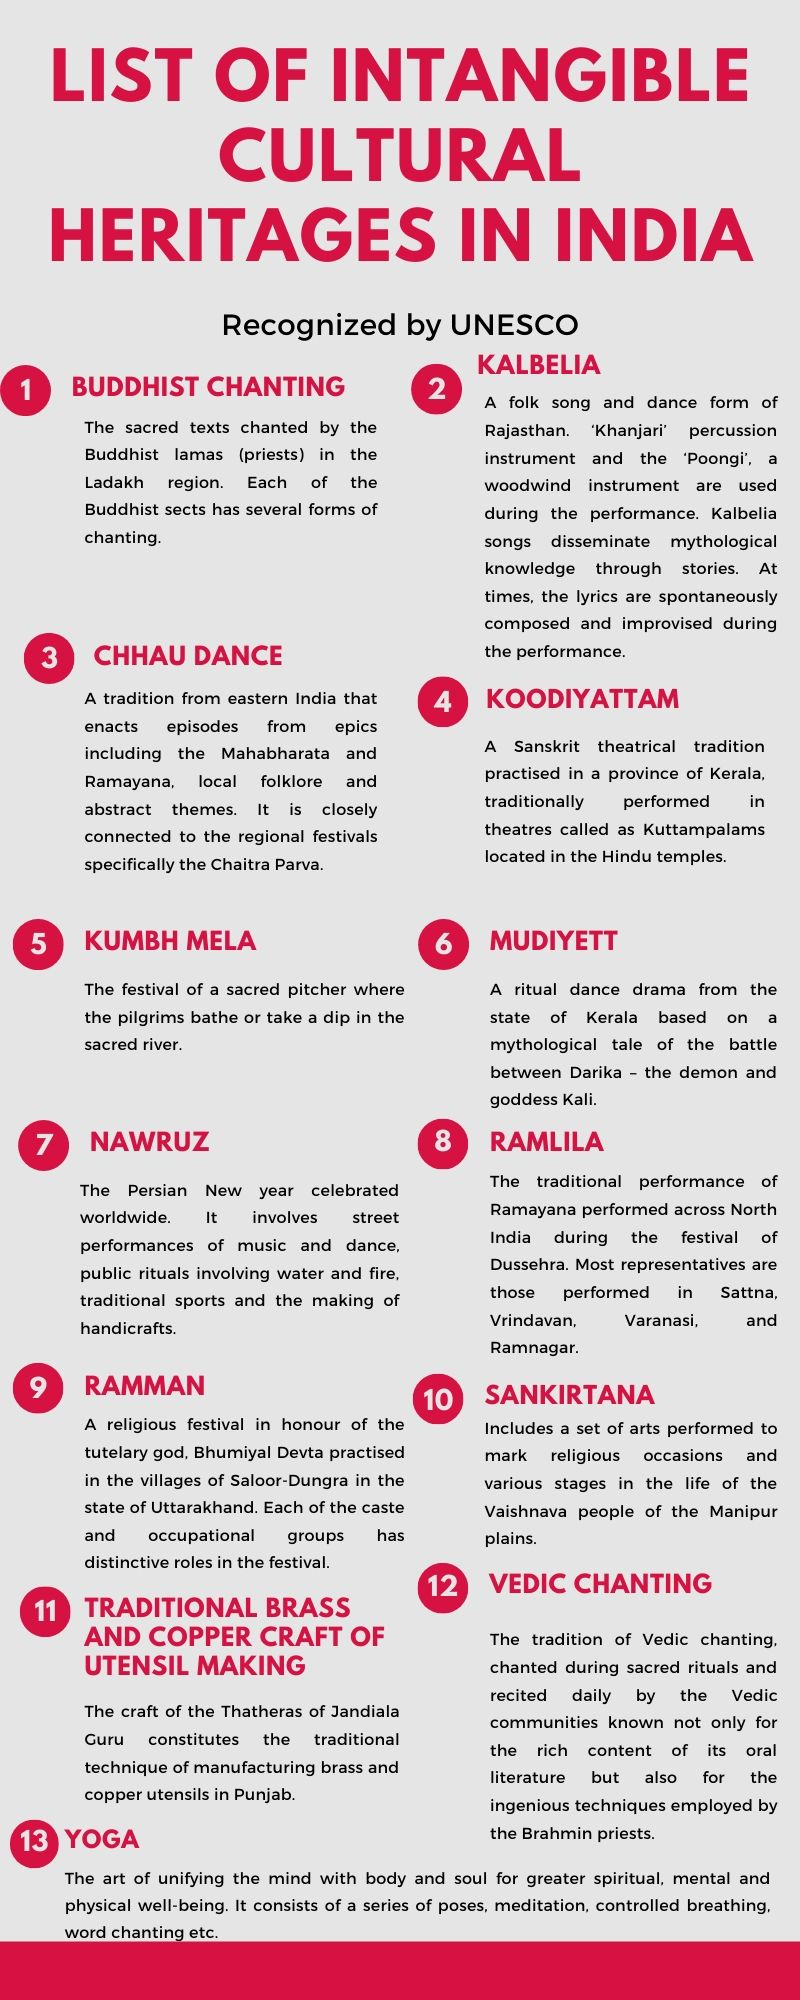 List of UNESCO Intangible Cultural Heritages in India